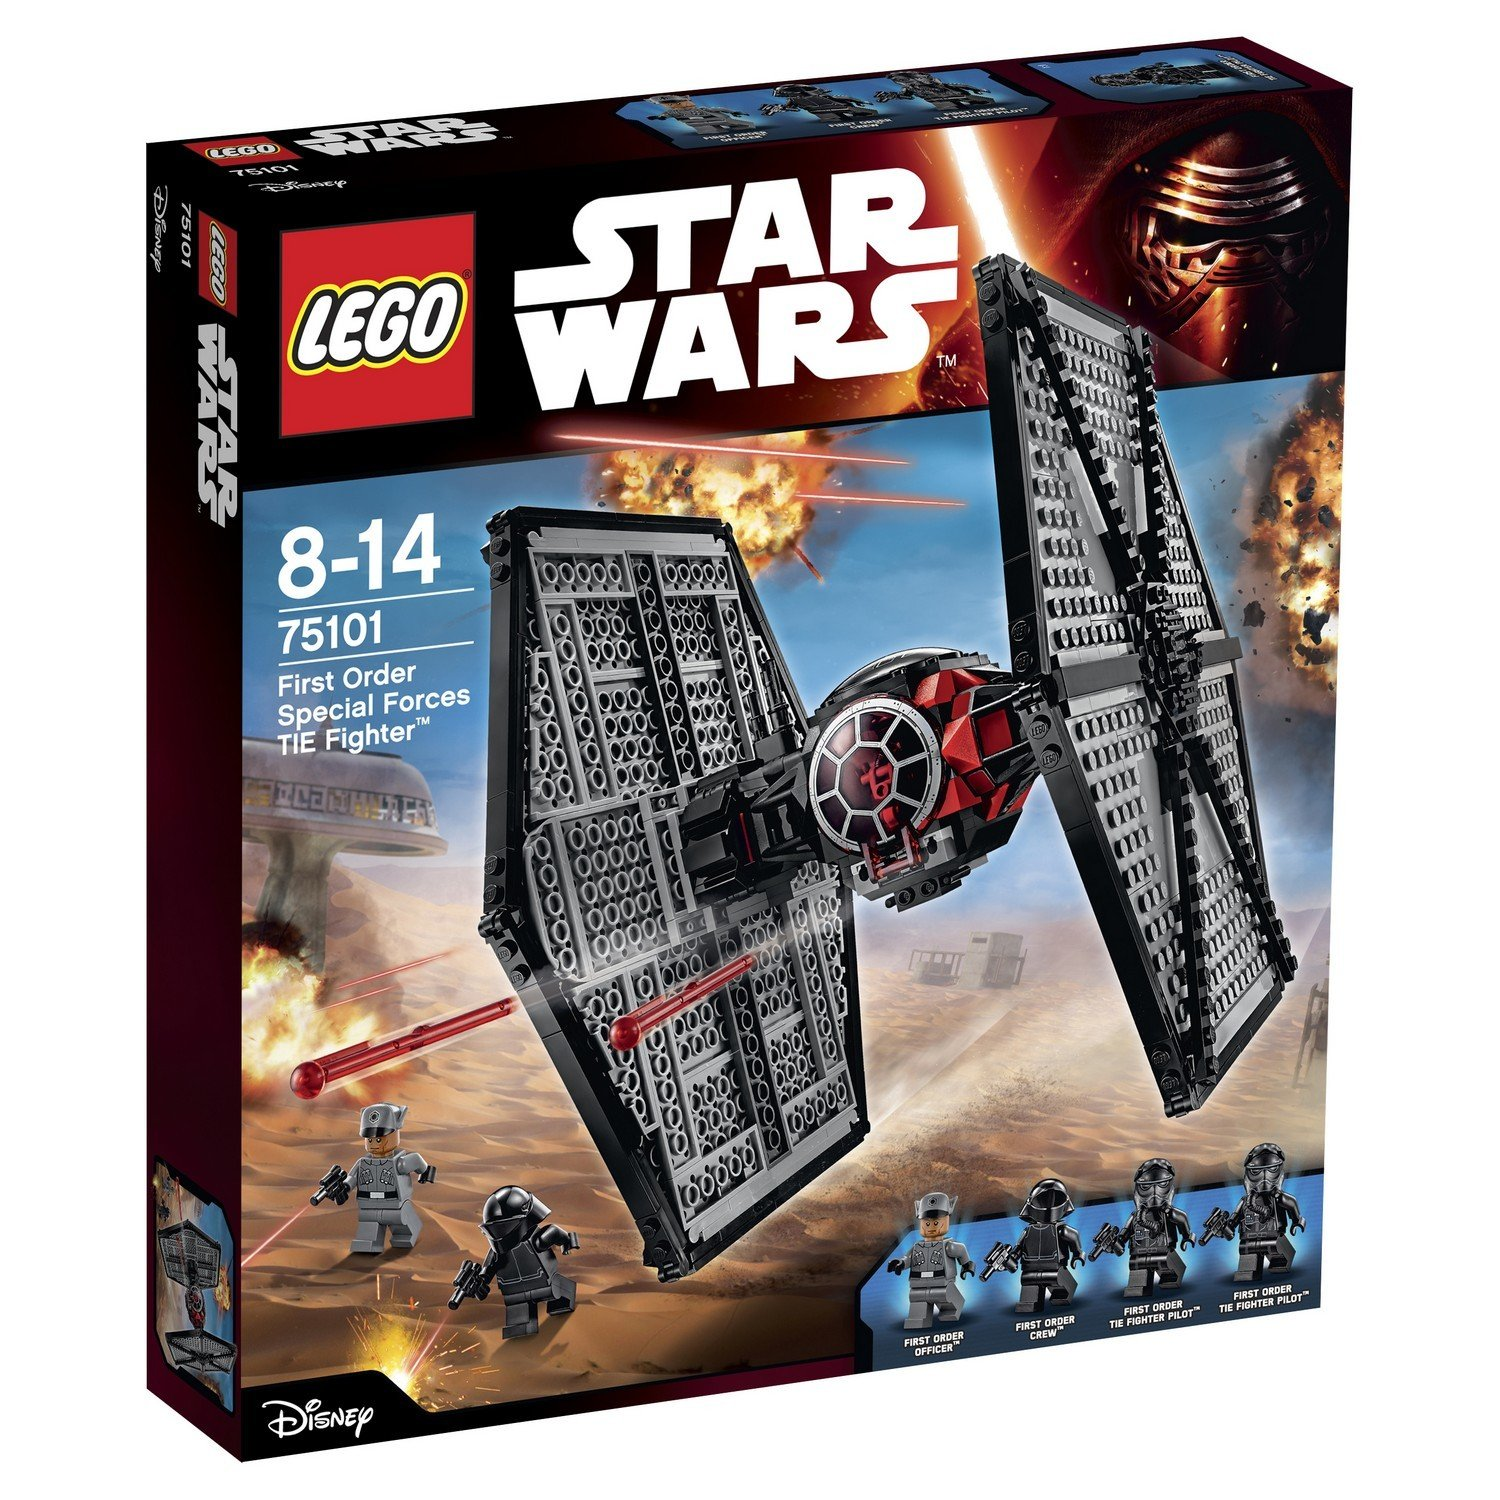 Star Wars Lego 75101 First Order Special Forces Tie Fighter